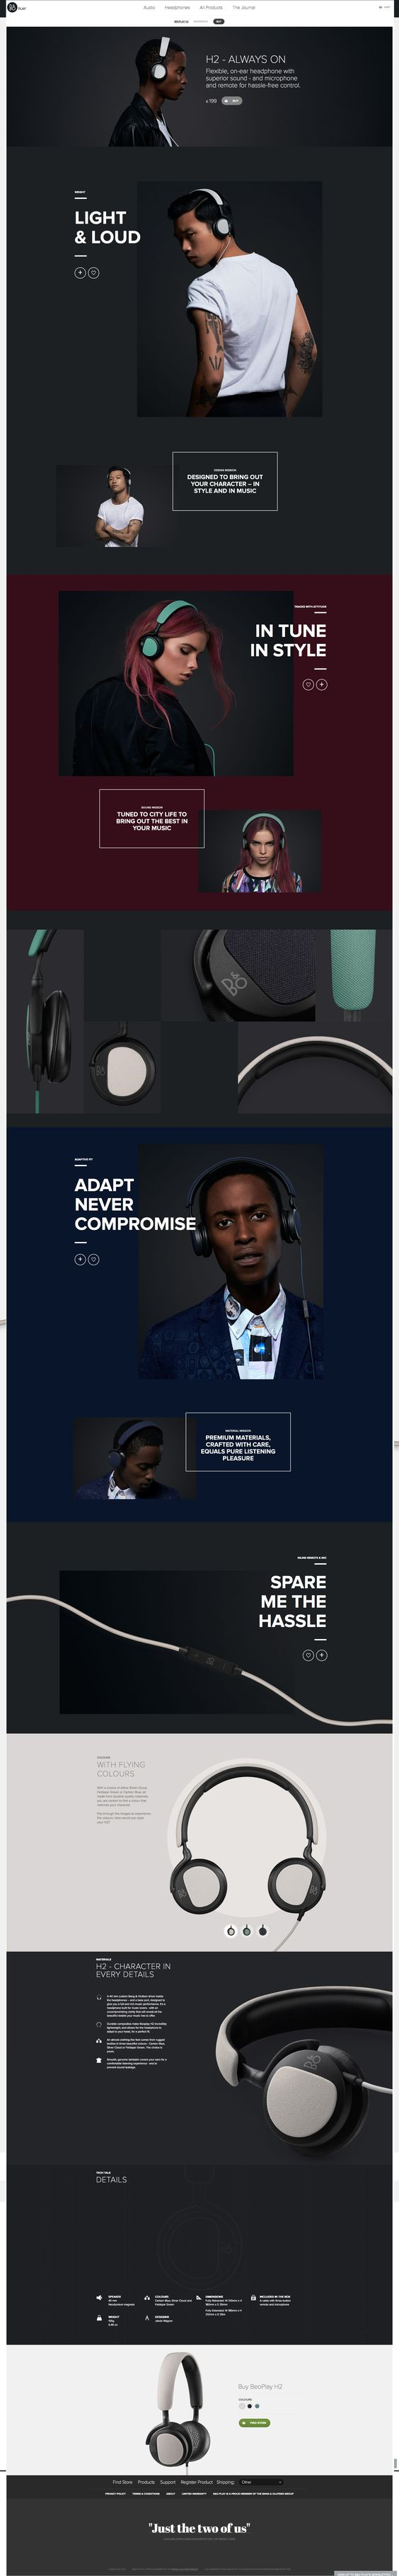 Bang & Olufson Beoplay H2. Just the two of us. (More design inspiration at www.aldenchong.com) #webdesign